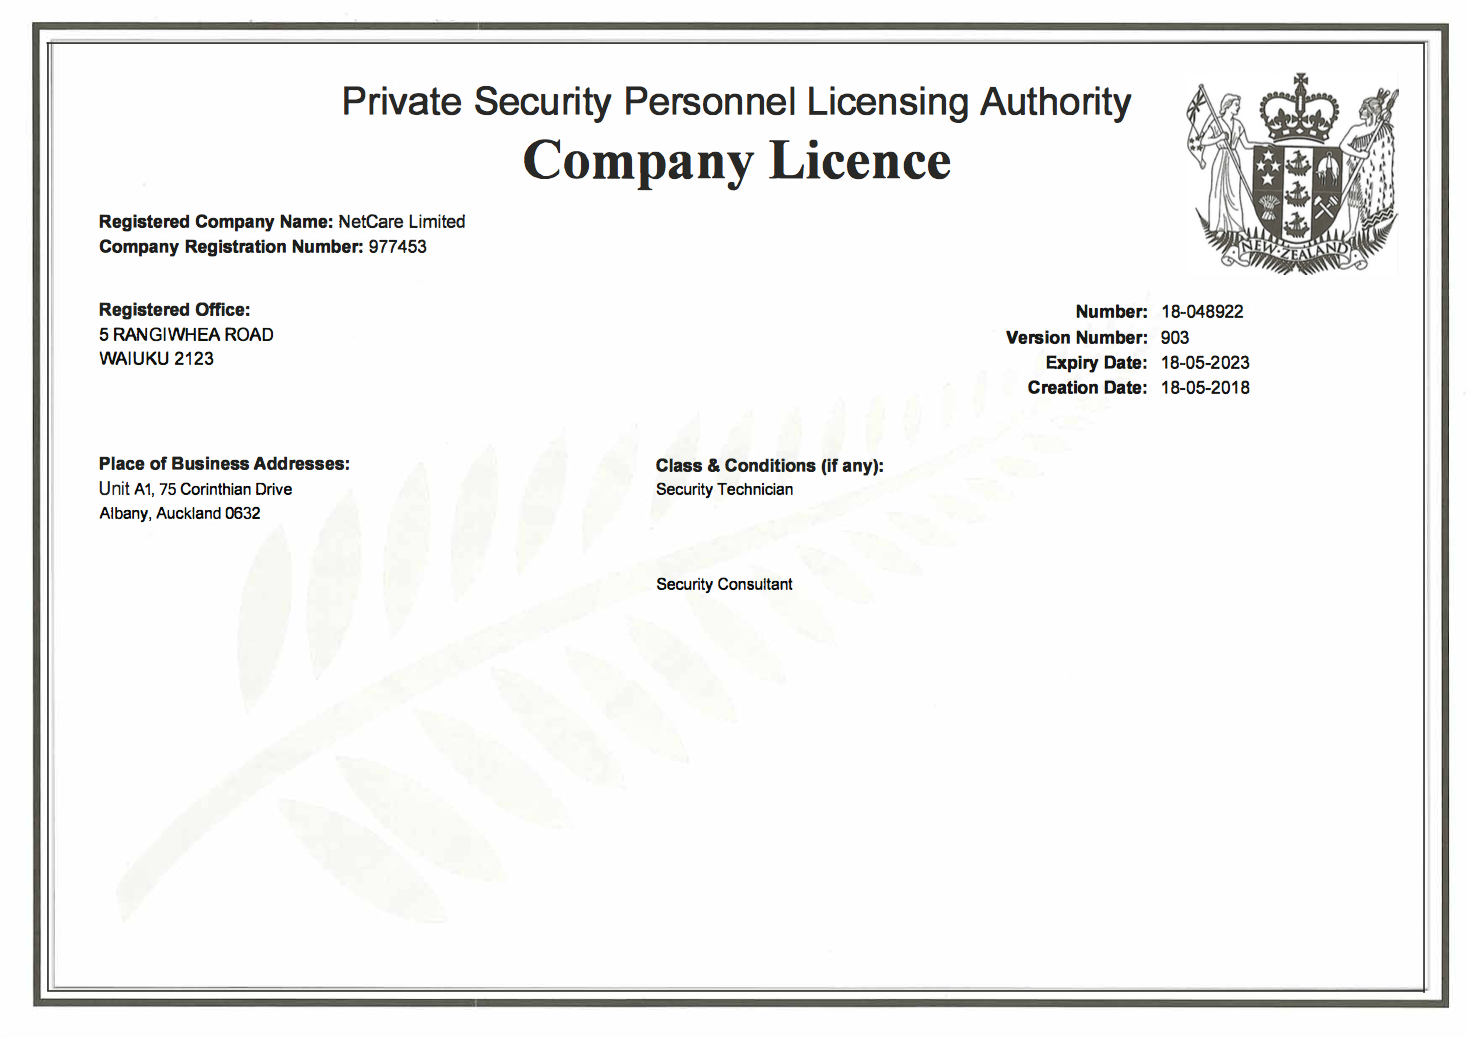 netcare-security-license.png